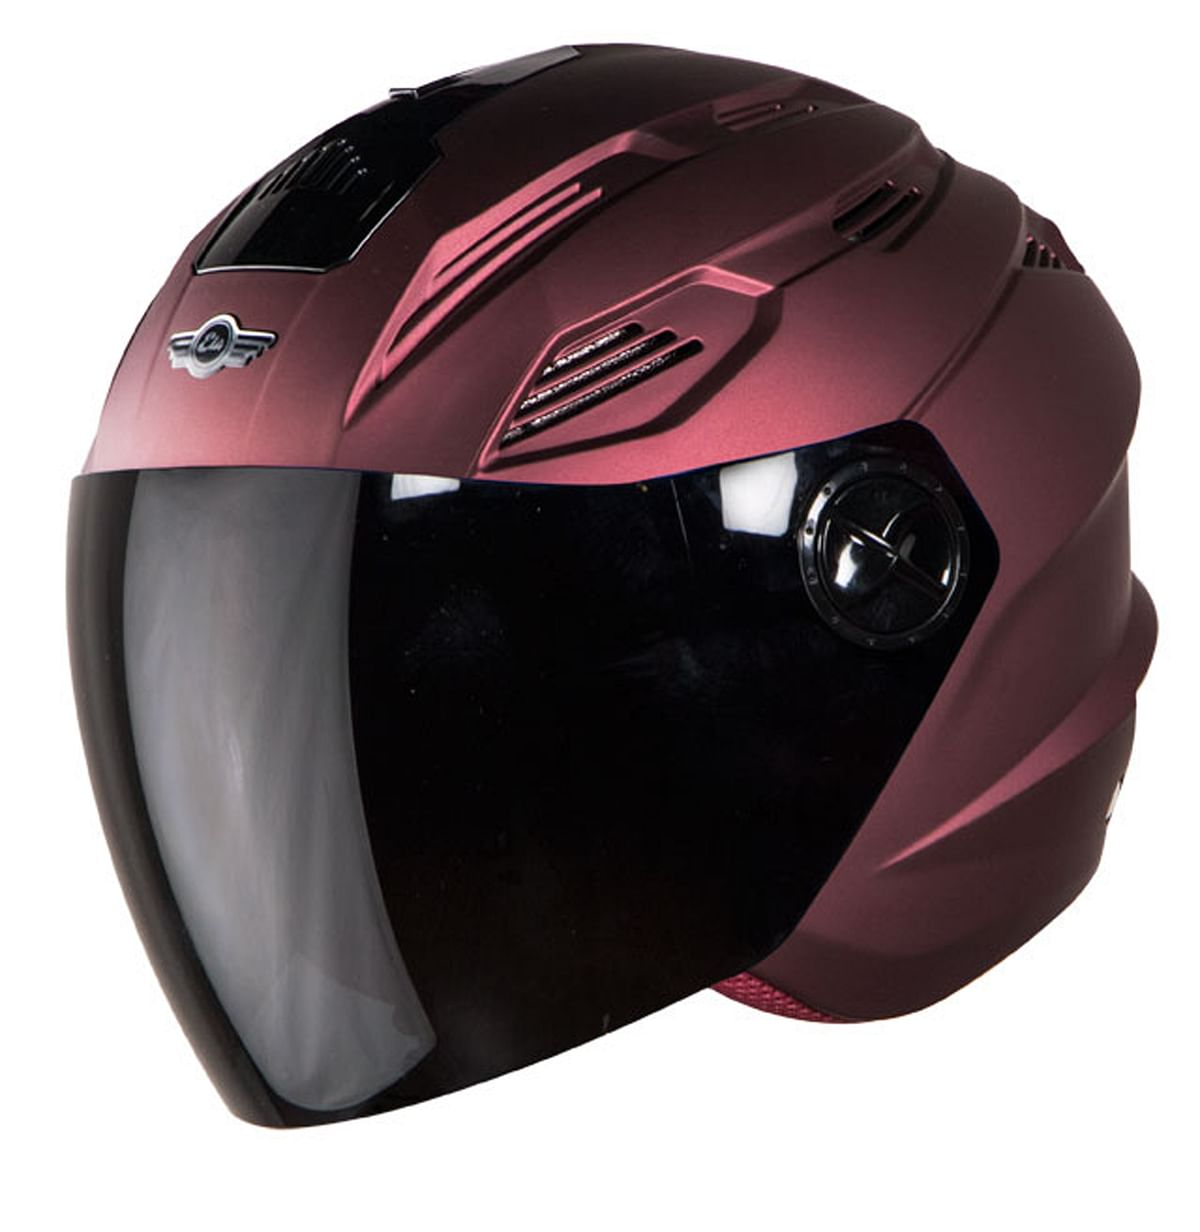 Steelbird launches new range of helmets